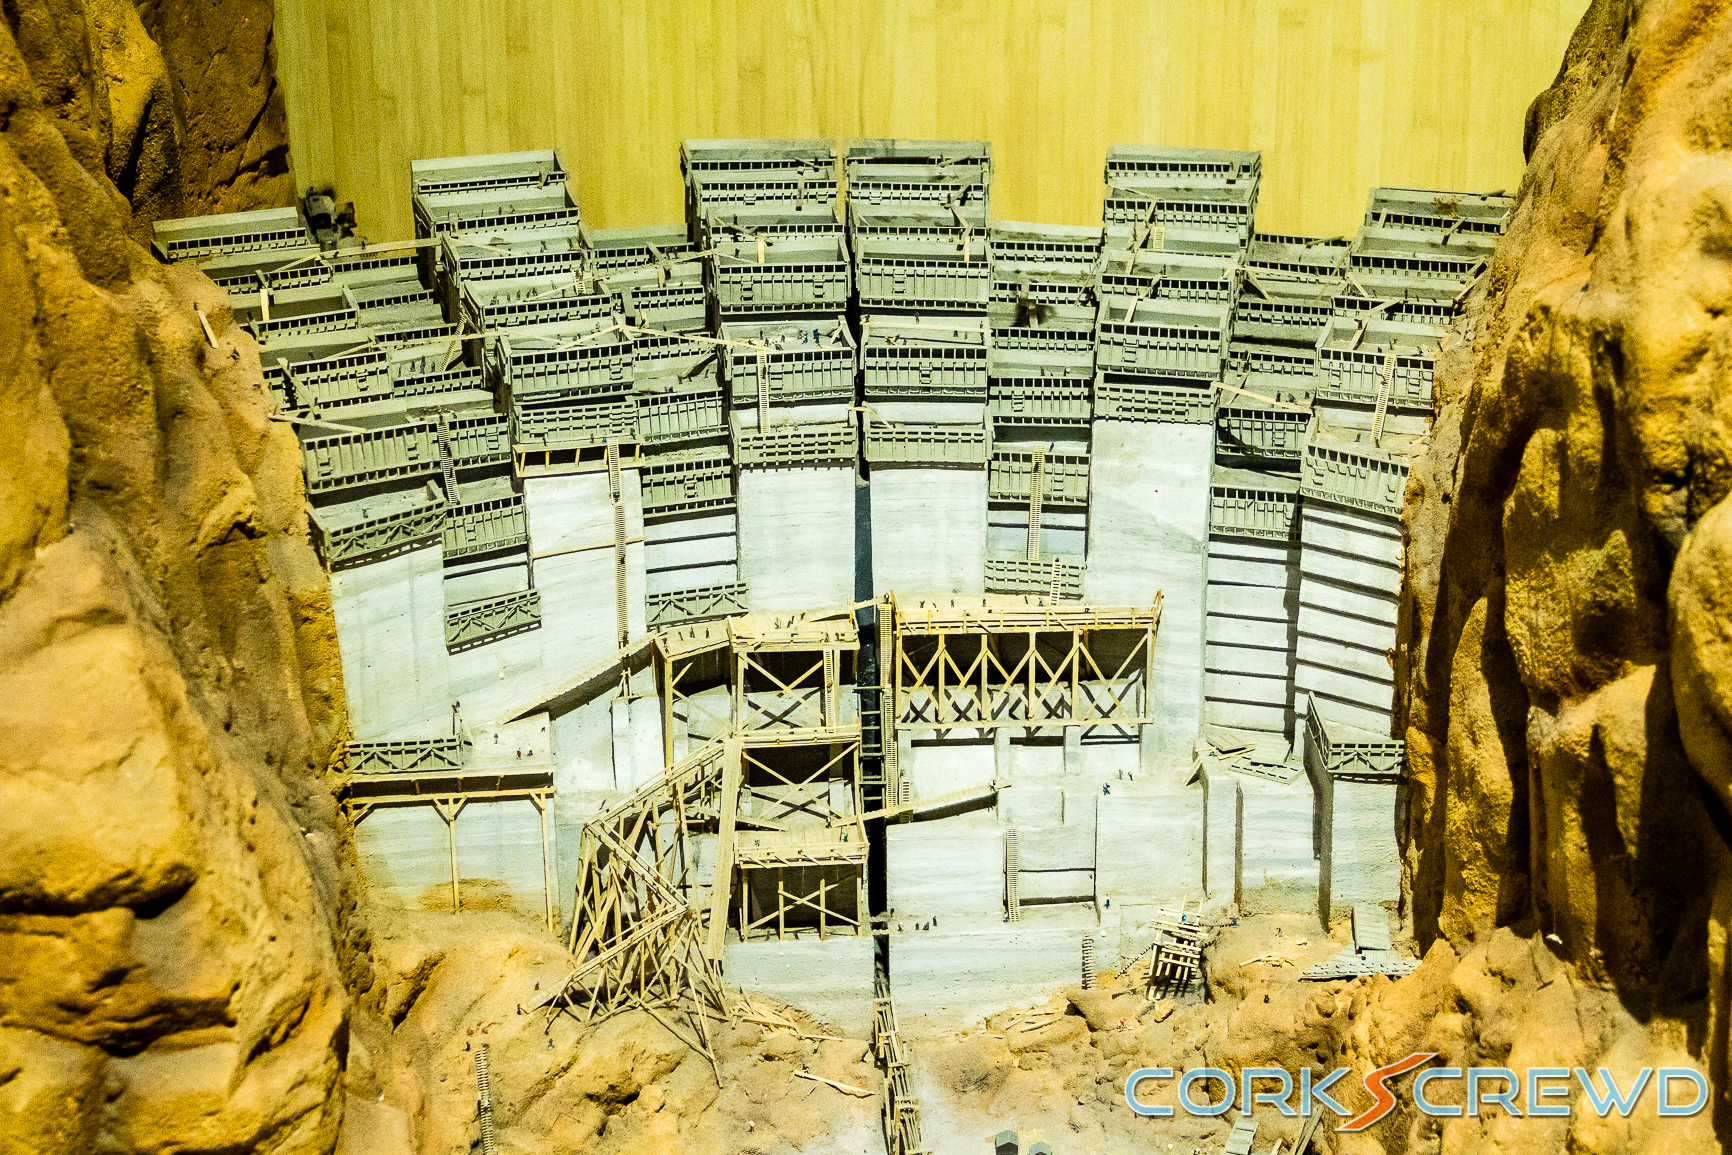 A model of the Hoover Dam being built.